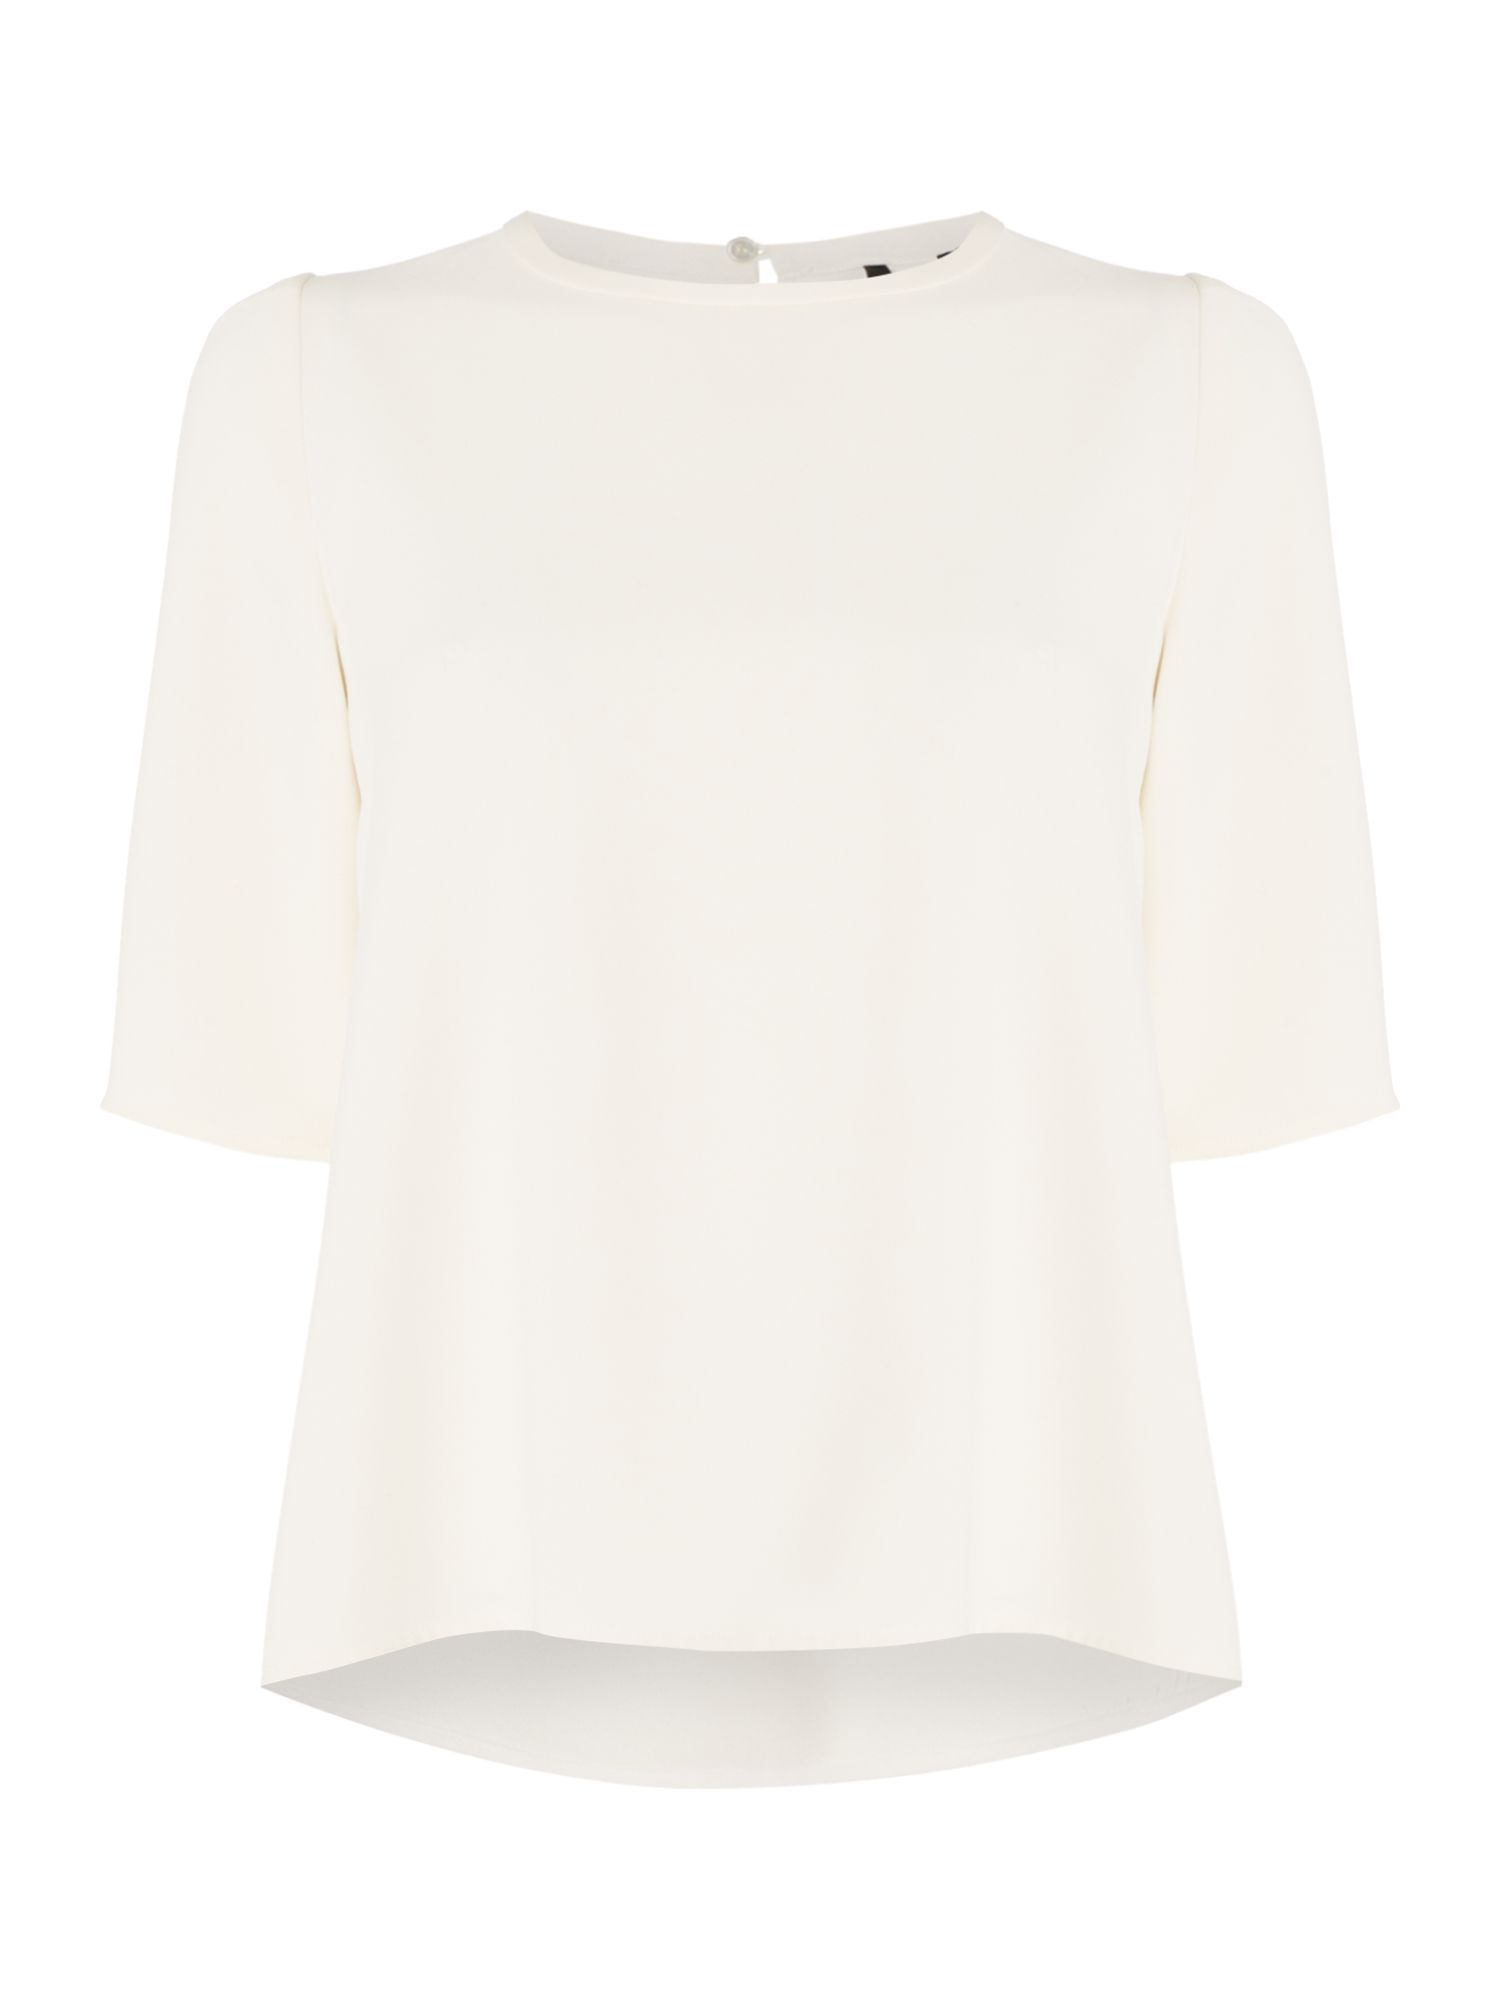 Marella Bolivar short sleeve shell top, White